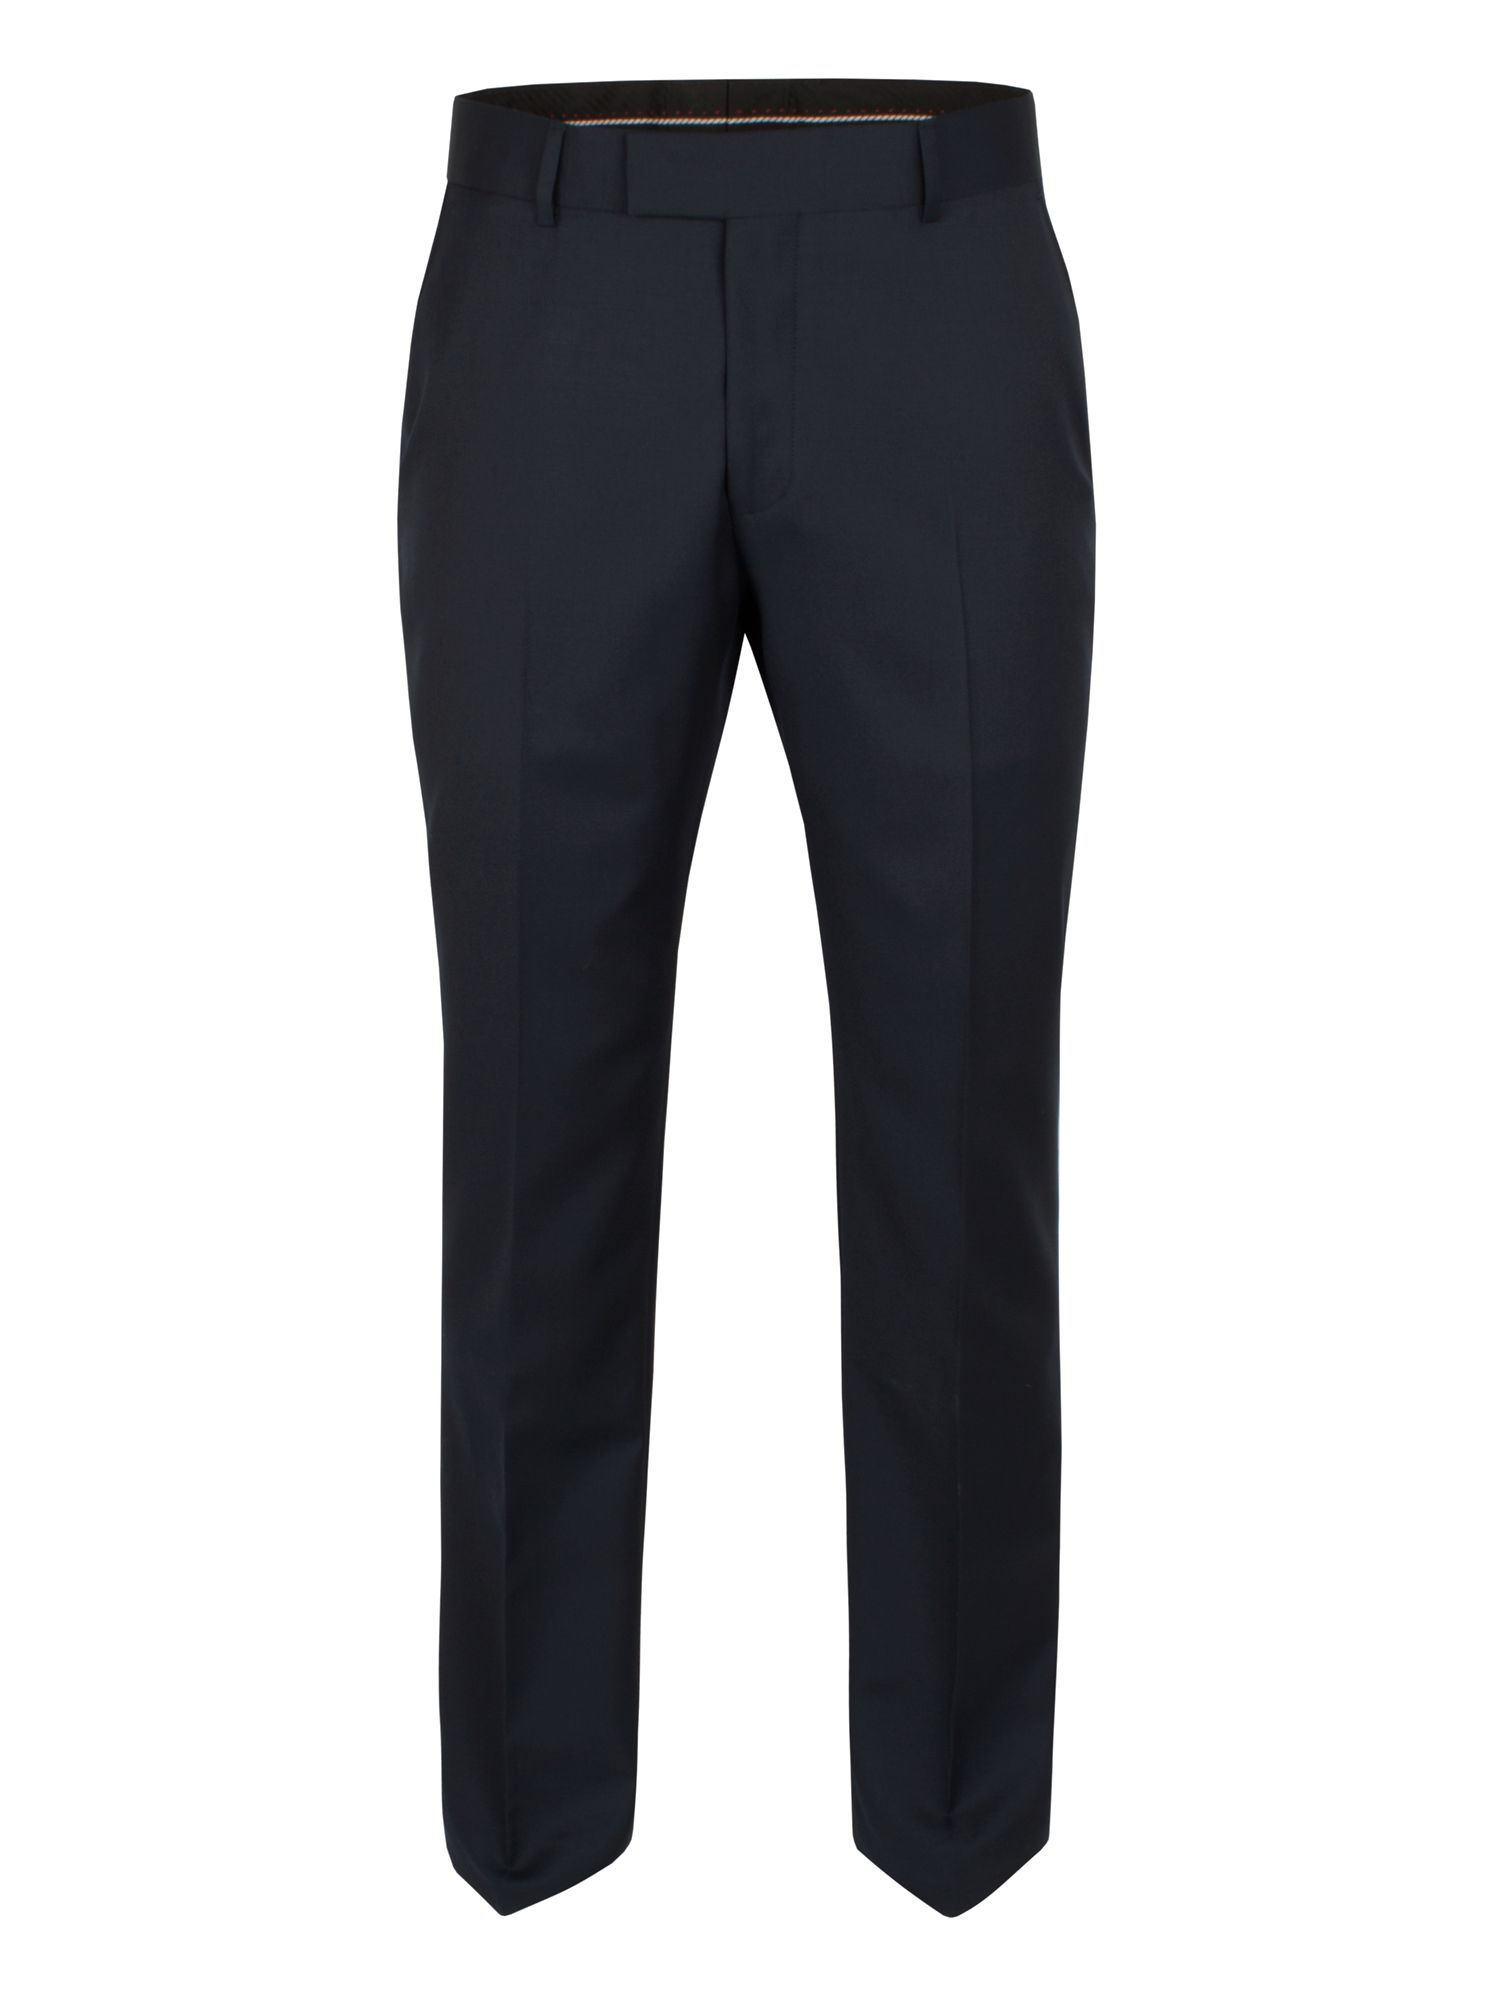 Plain navy wool trouser